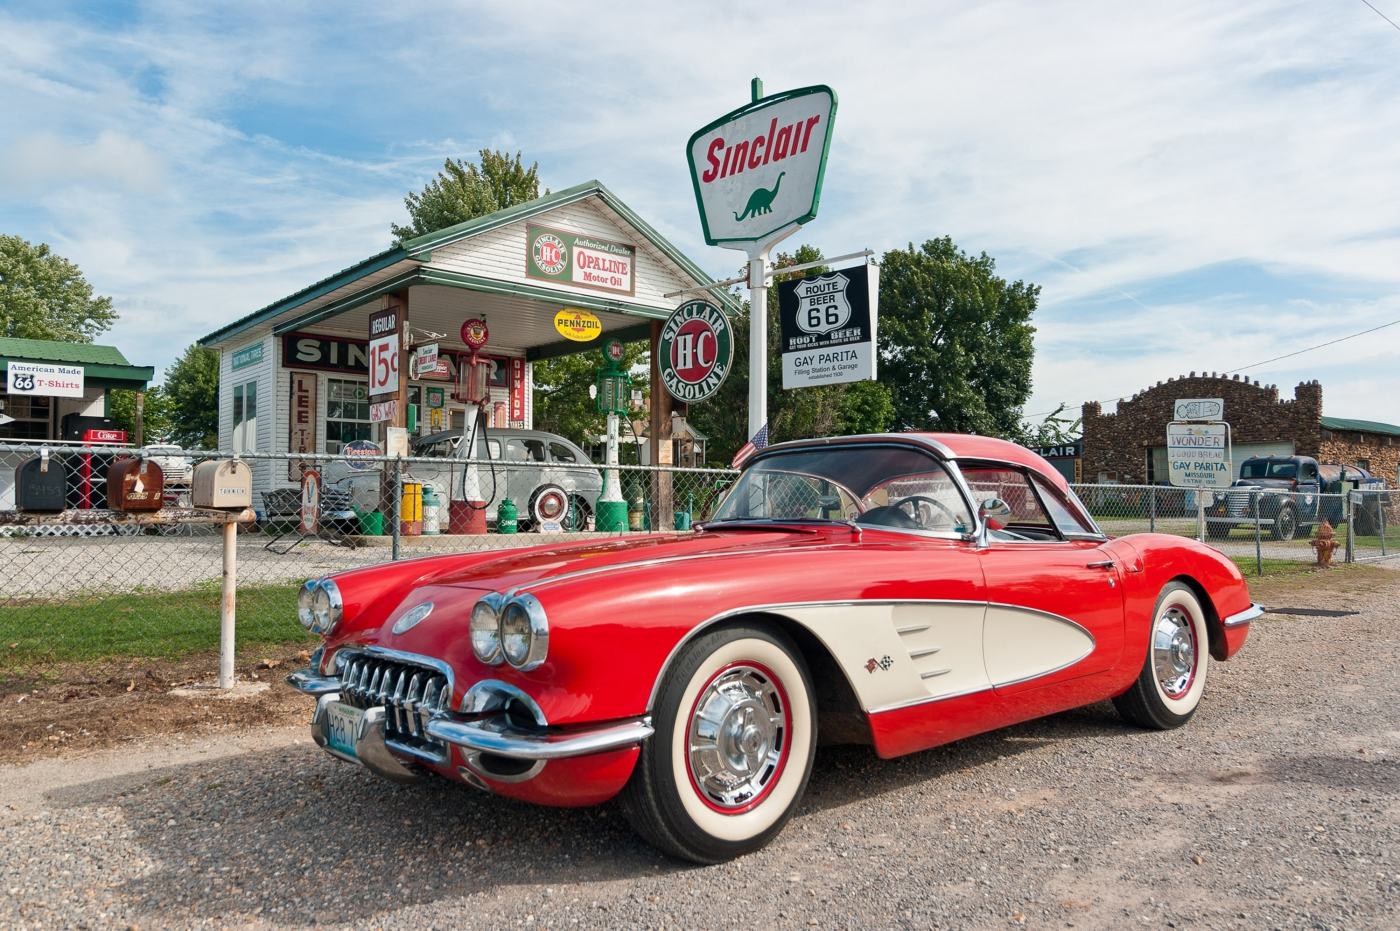 Known the world over, Route 66 runs nearly 300 miles across Missouri and includes unique stops like Gary's Gay Parita.